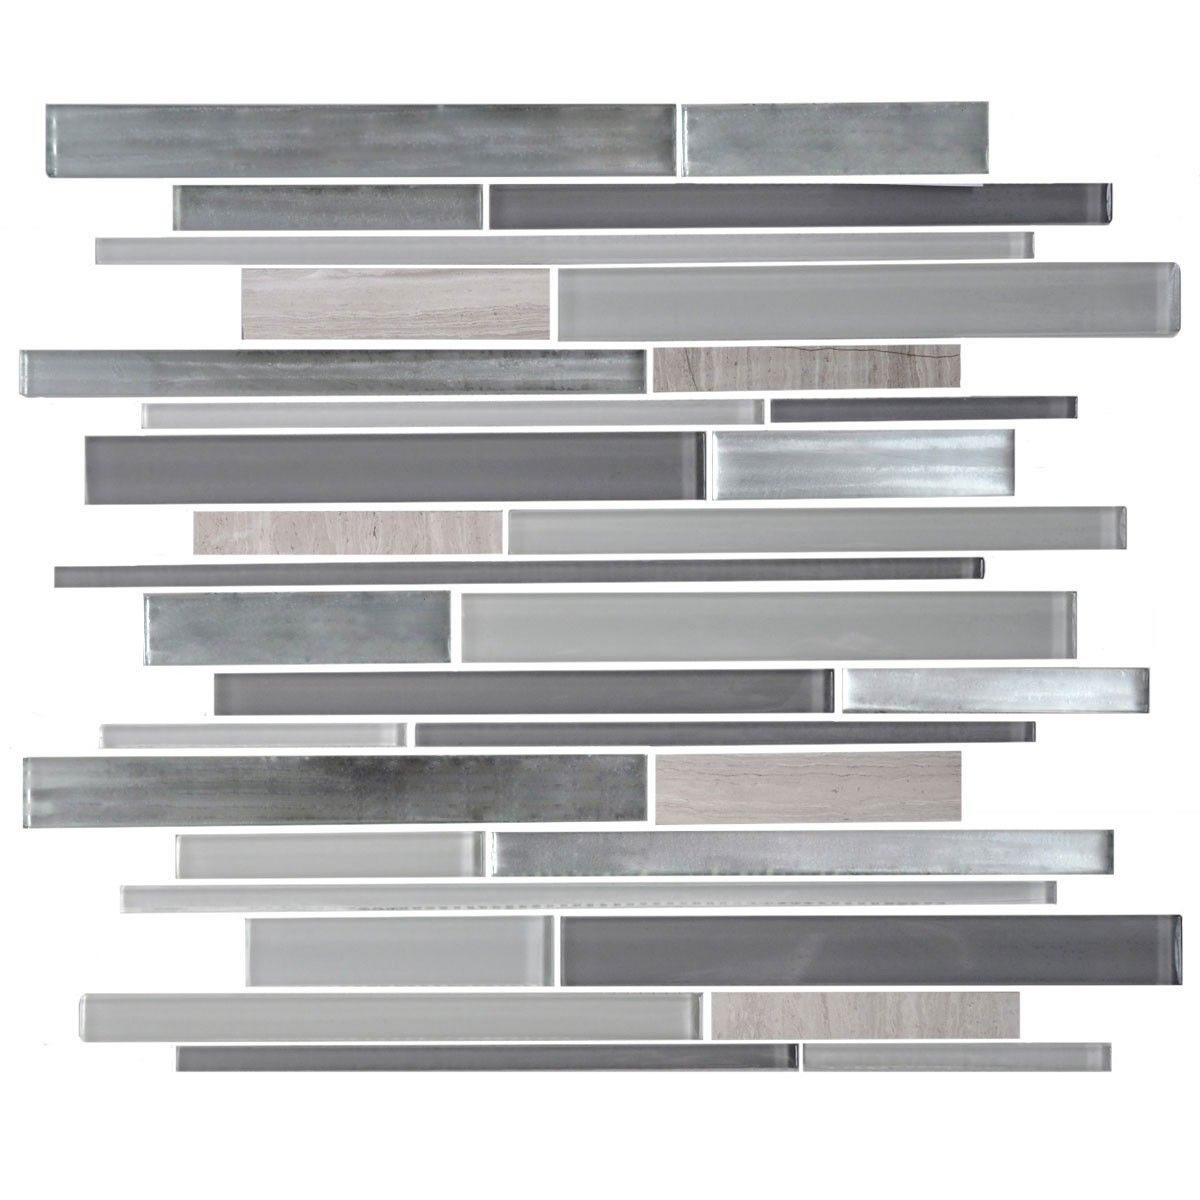 14.5 in. x 12.2 in. Glass/Stone Blend Strip Mosaic Tile - 8mm Thickness (AD806121)